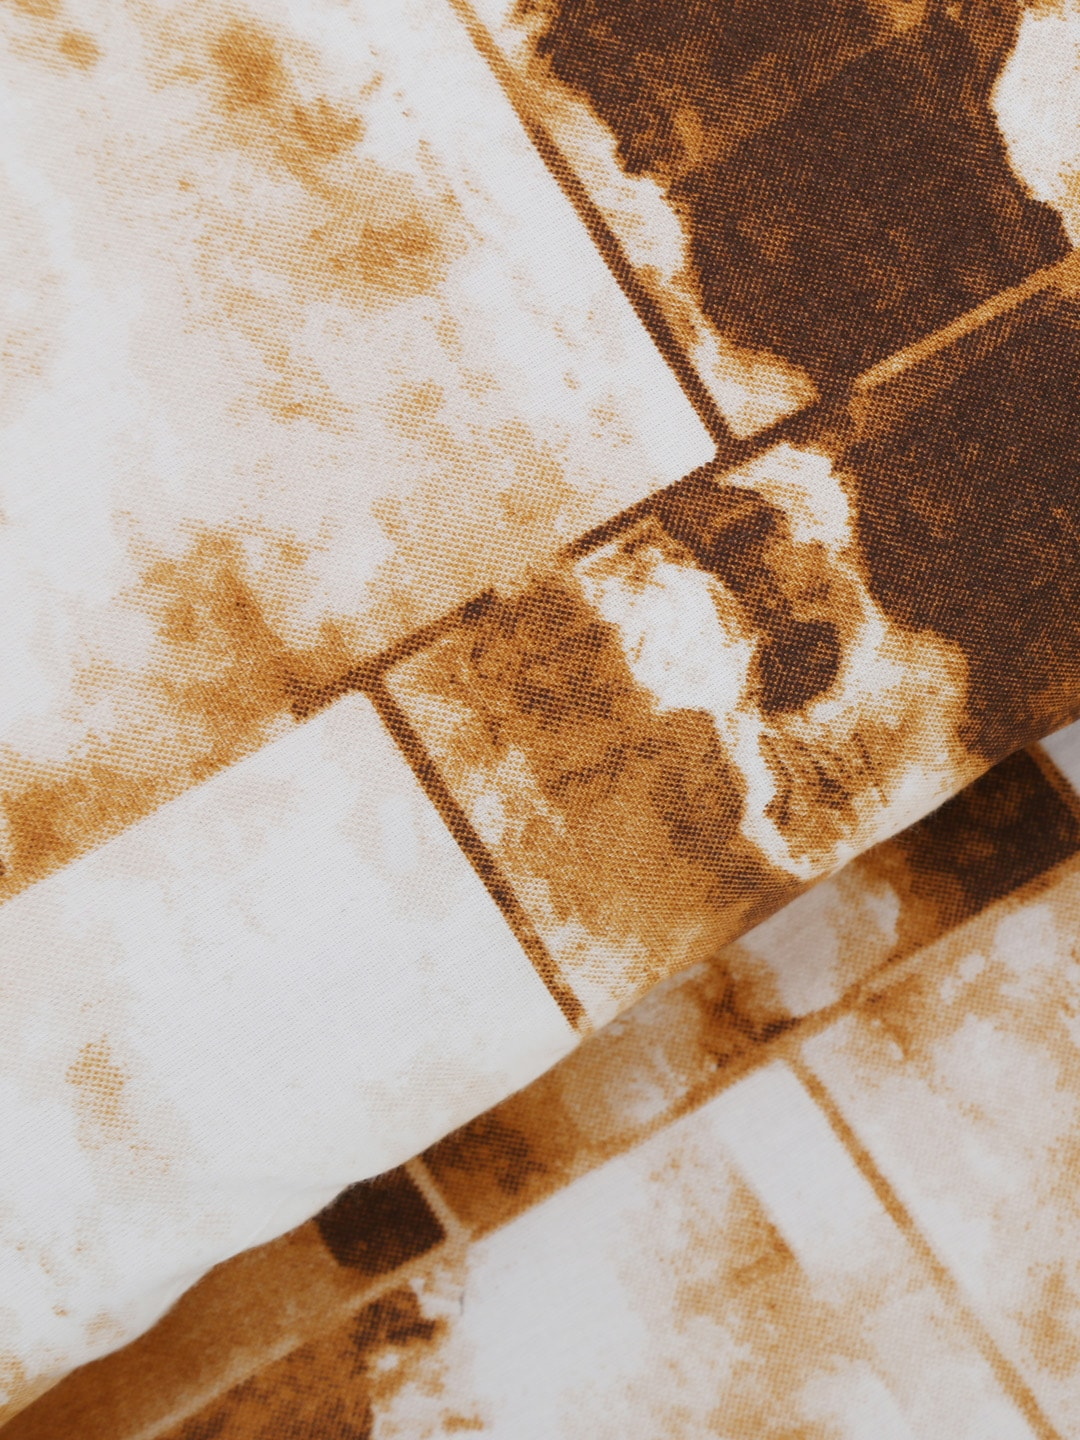 Brown bed sheets texture - Brown Bed Sheets Texture 52